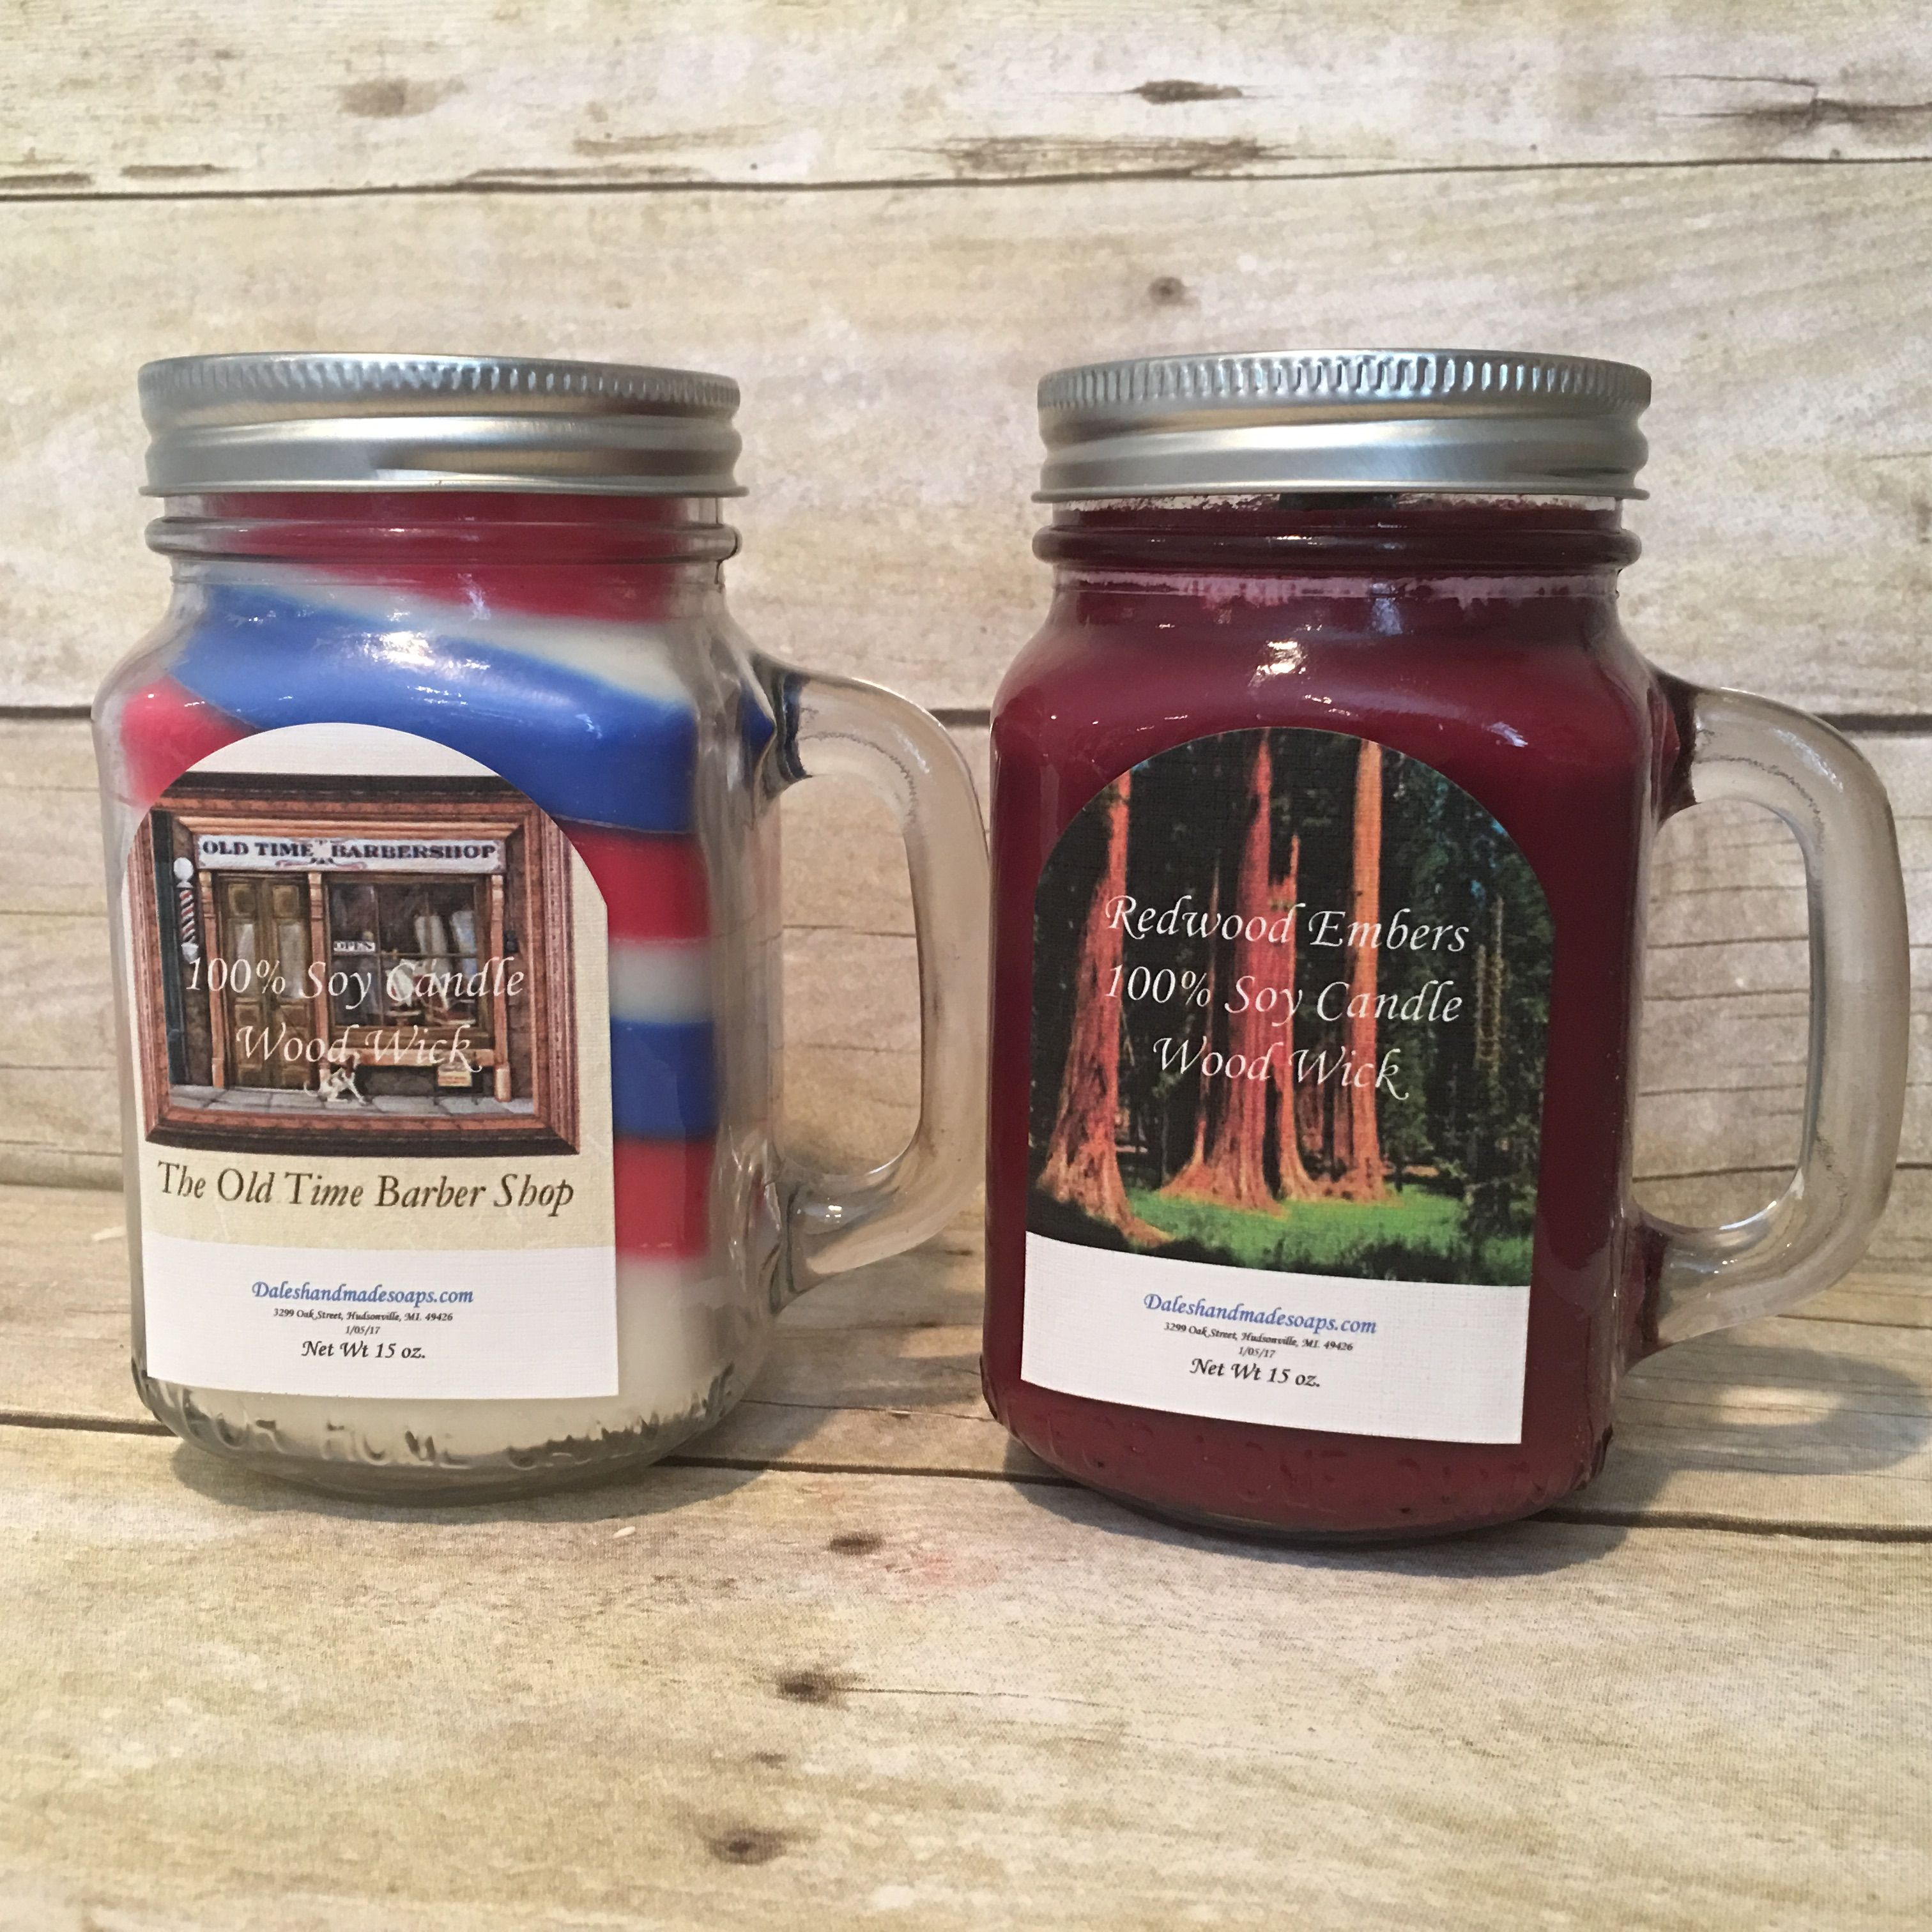 Two new scents, Old Time Barbershop, and Redwood Embers.